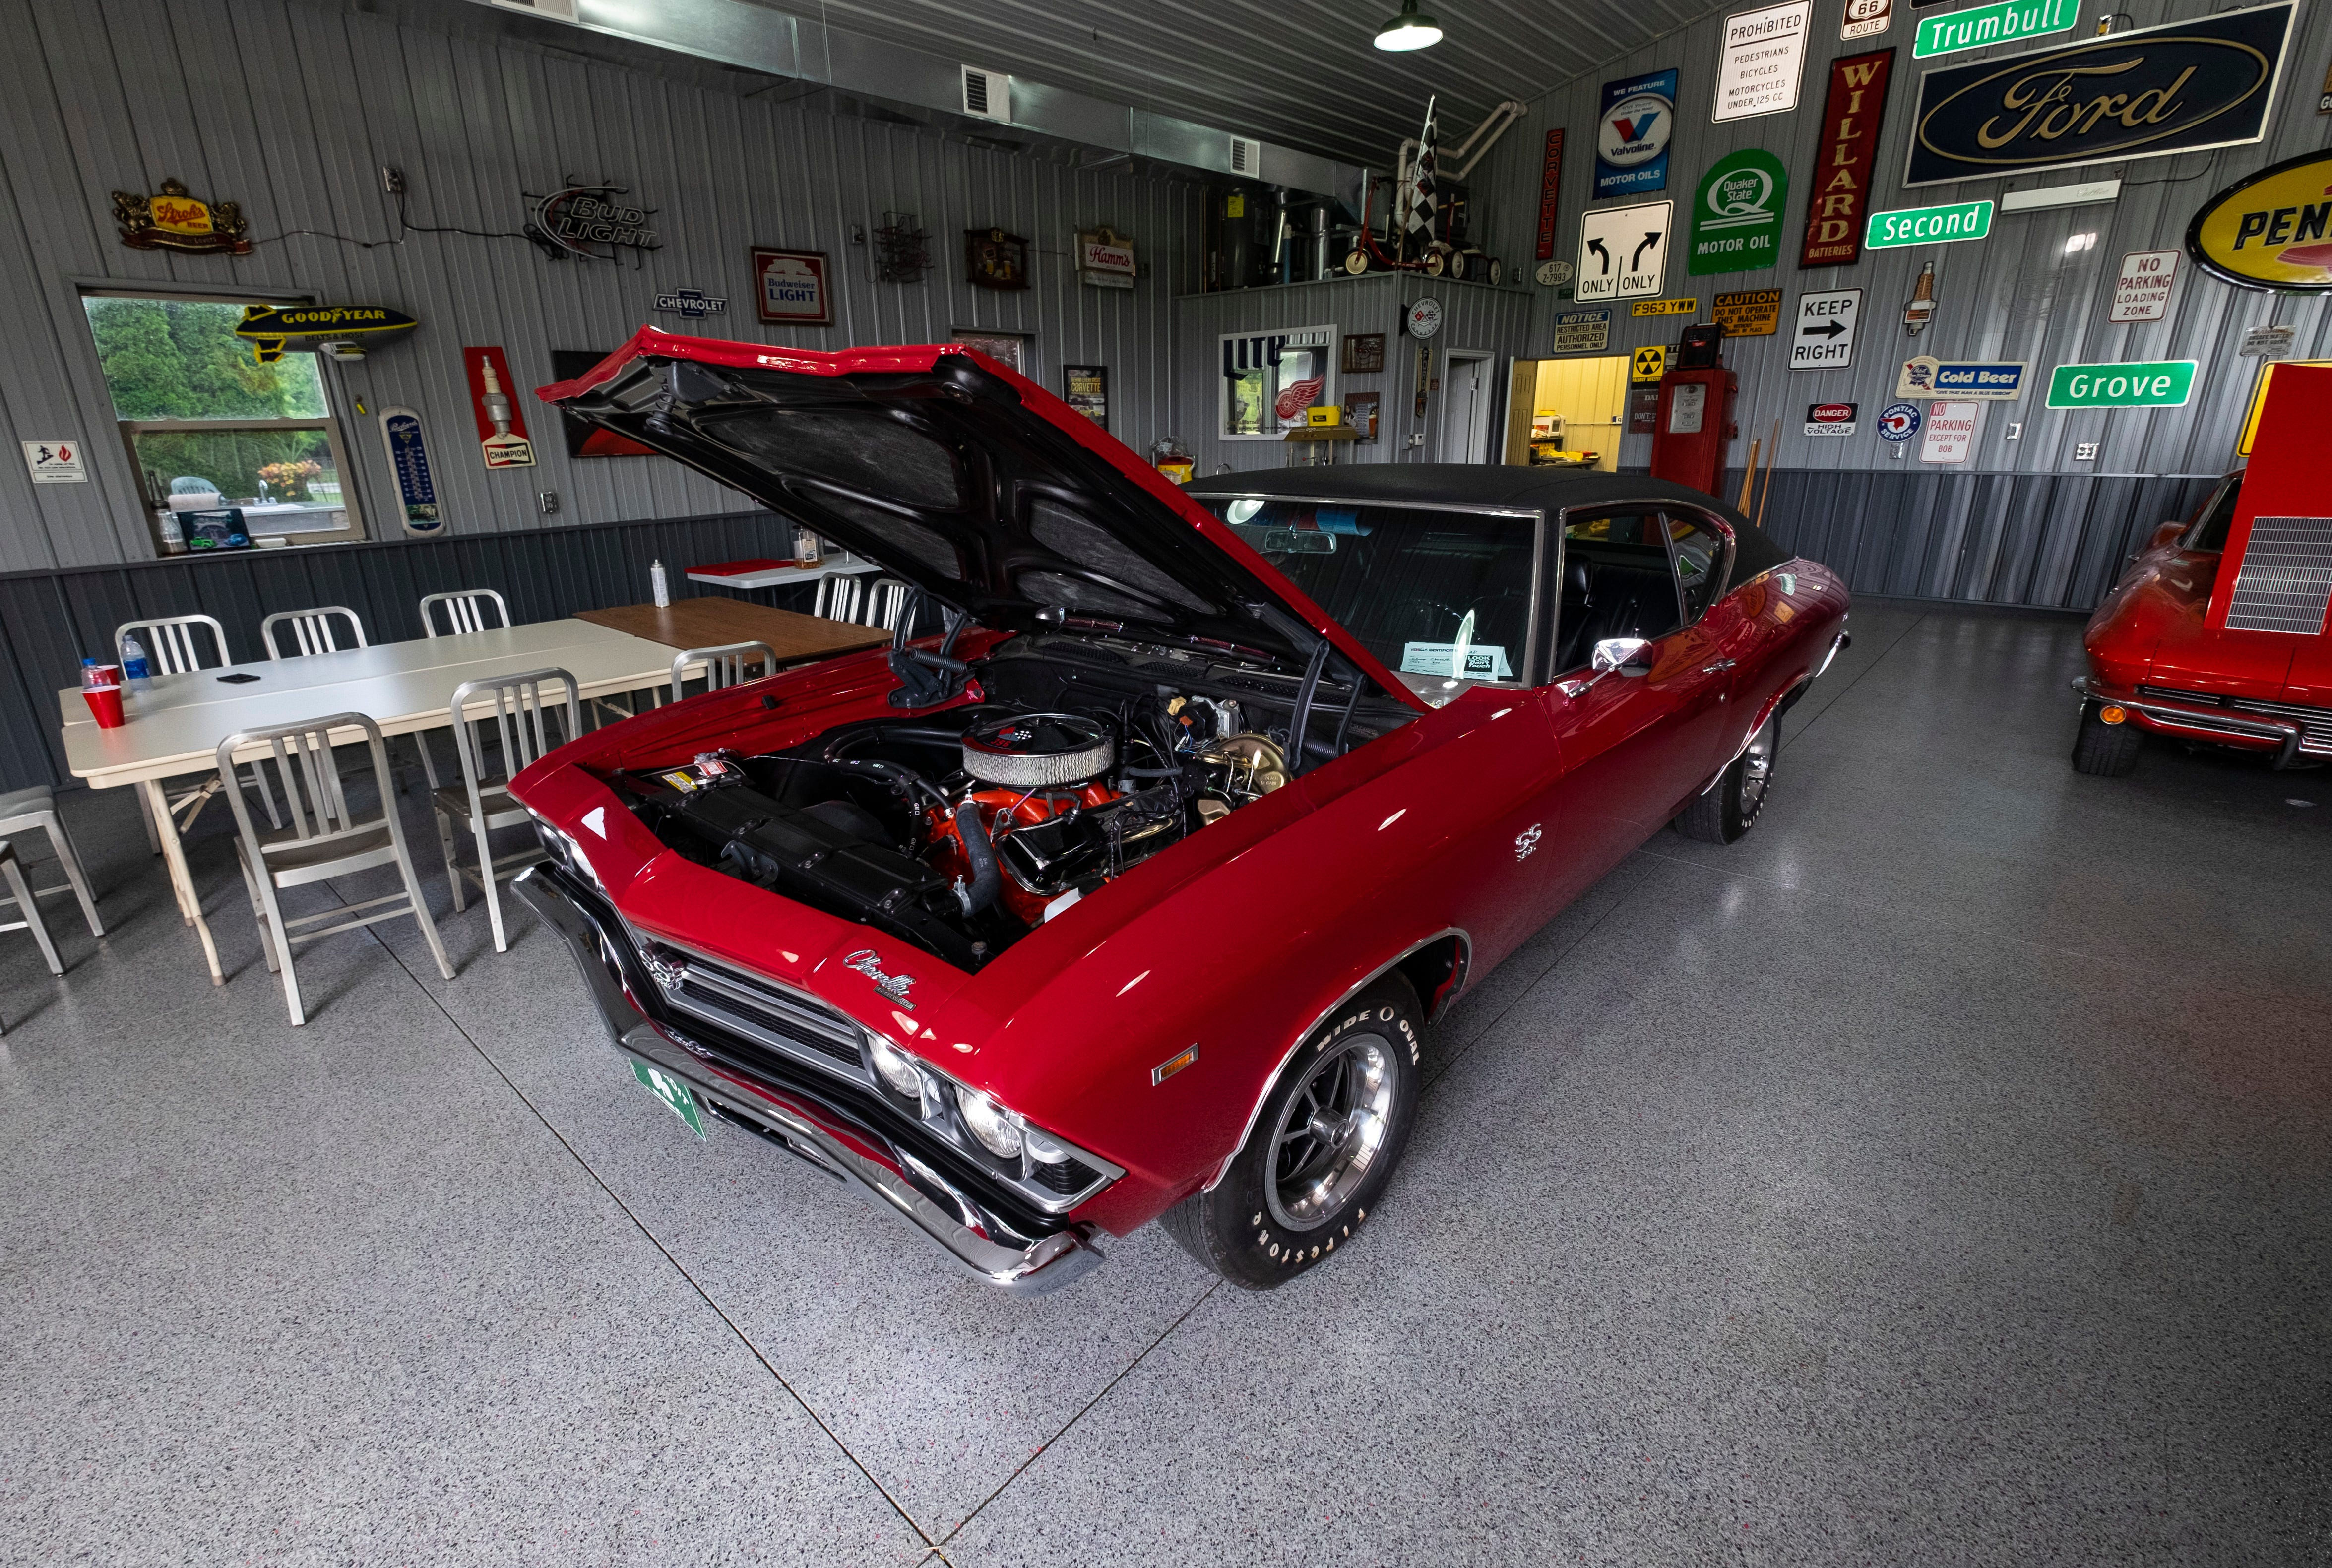 Photos: East Detroit High School student restores 1969 Chevelle with